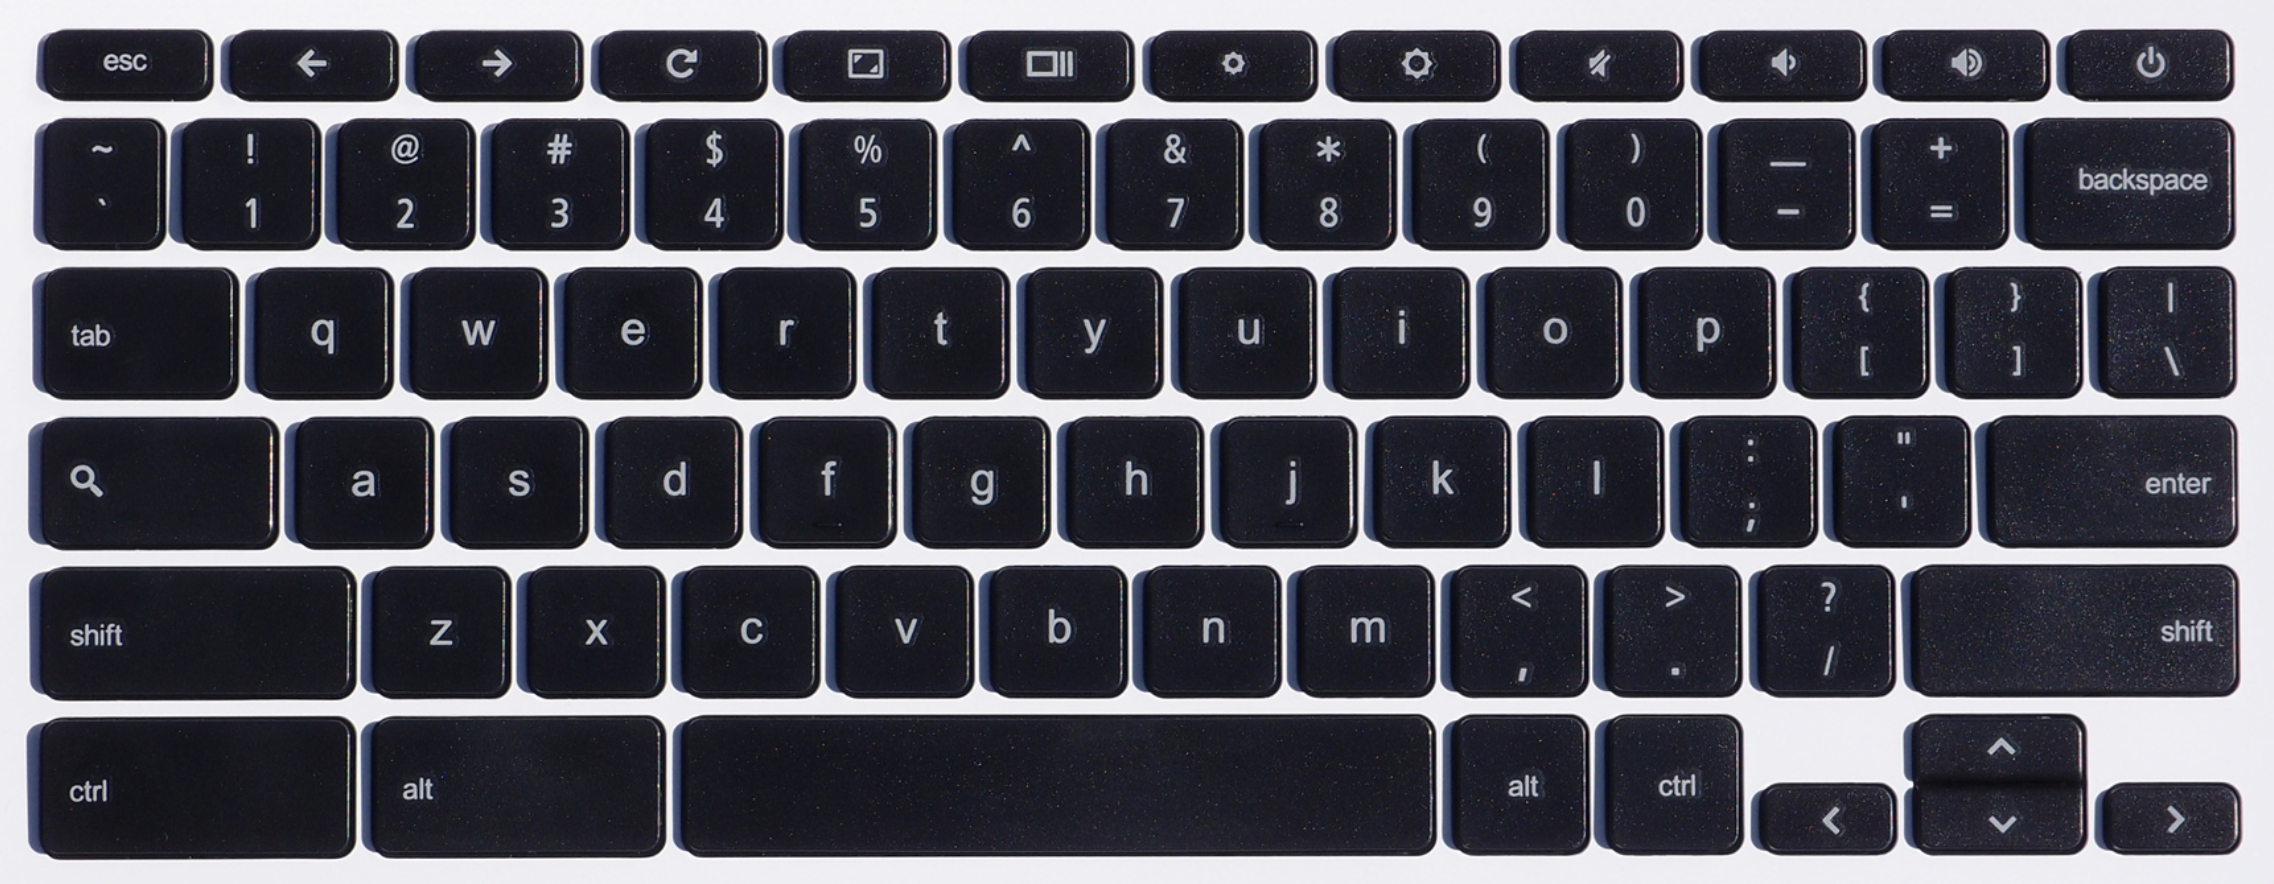 asus-chromebook-c300sa-keyboard-key-replacement.jpg